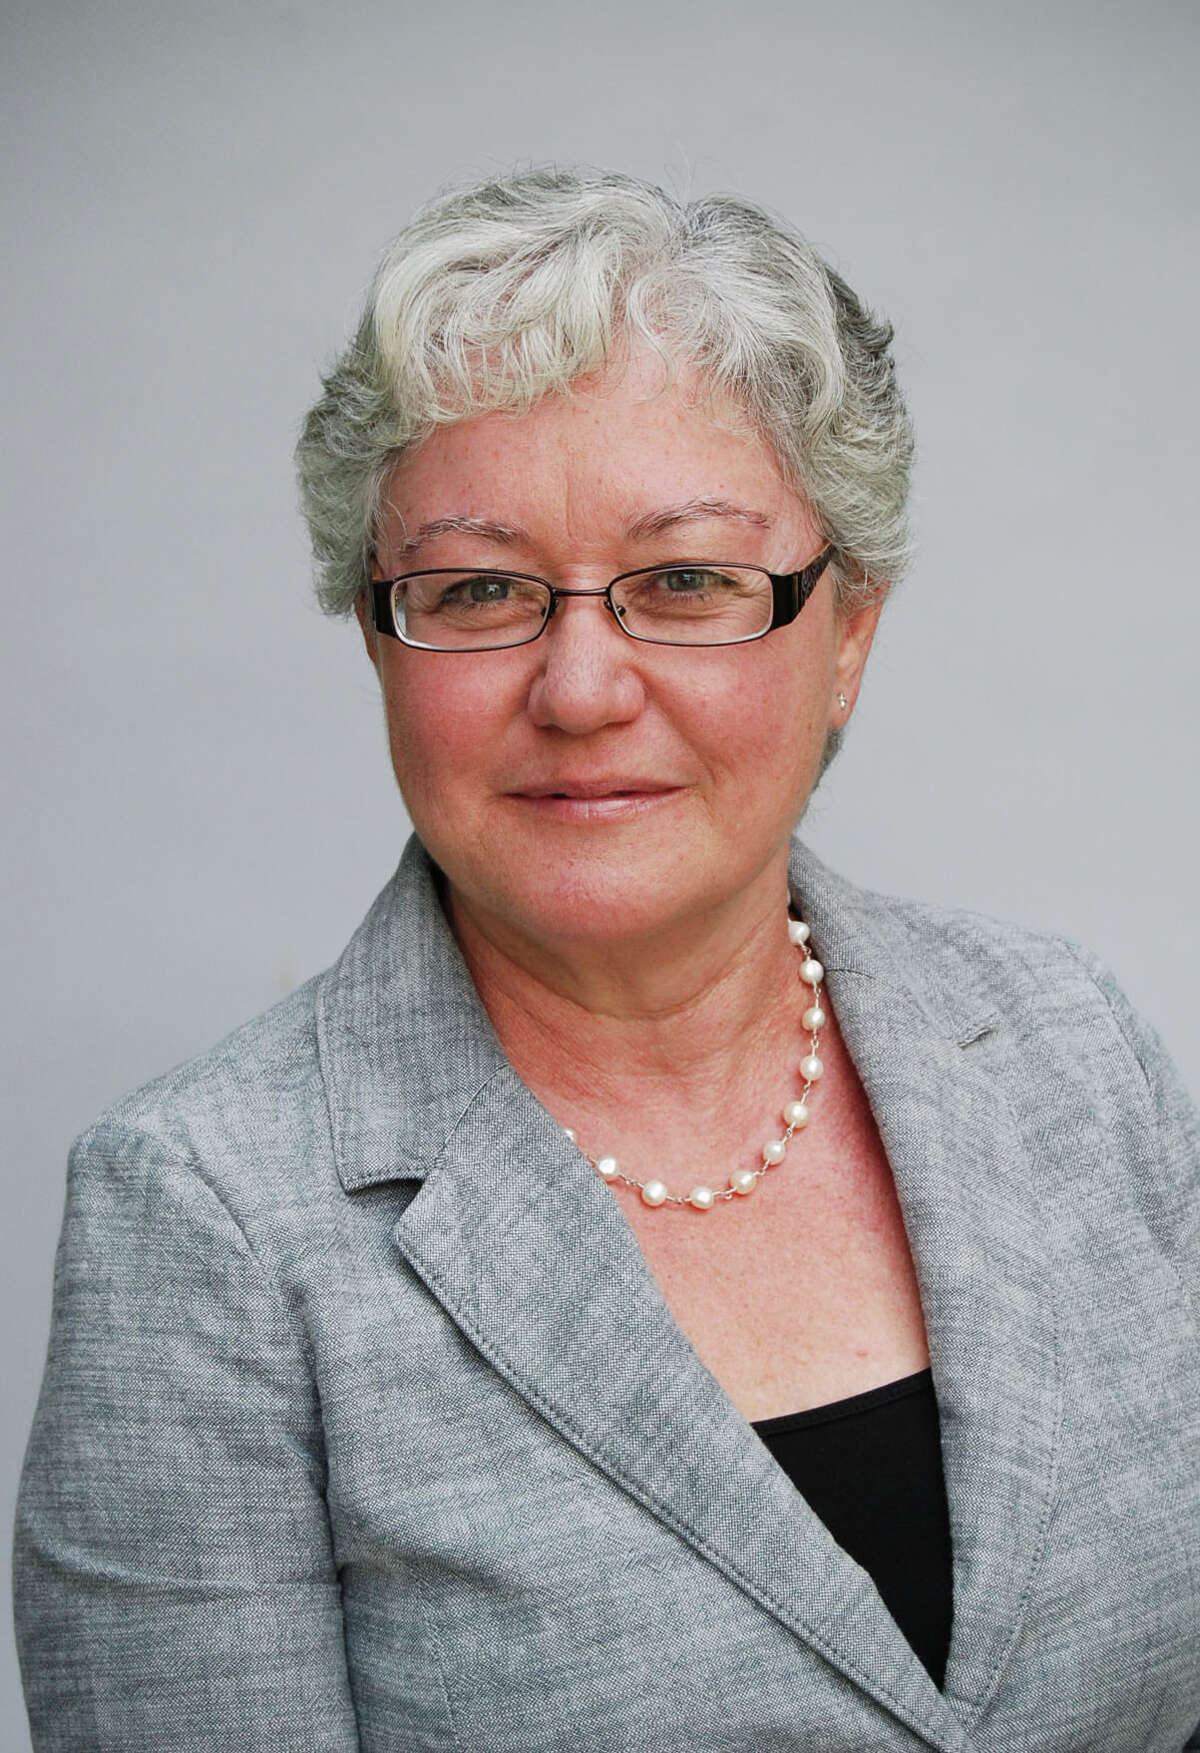 Cynthia Young, Democratic candidate for Malta supervisor (provided photo)